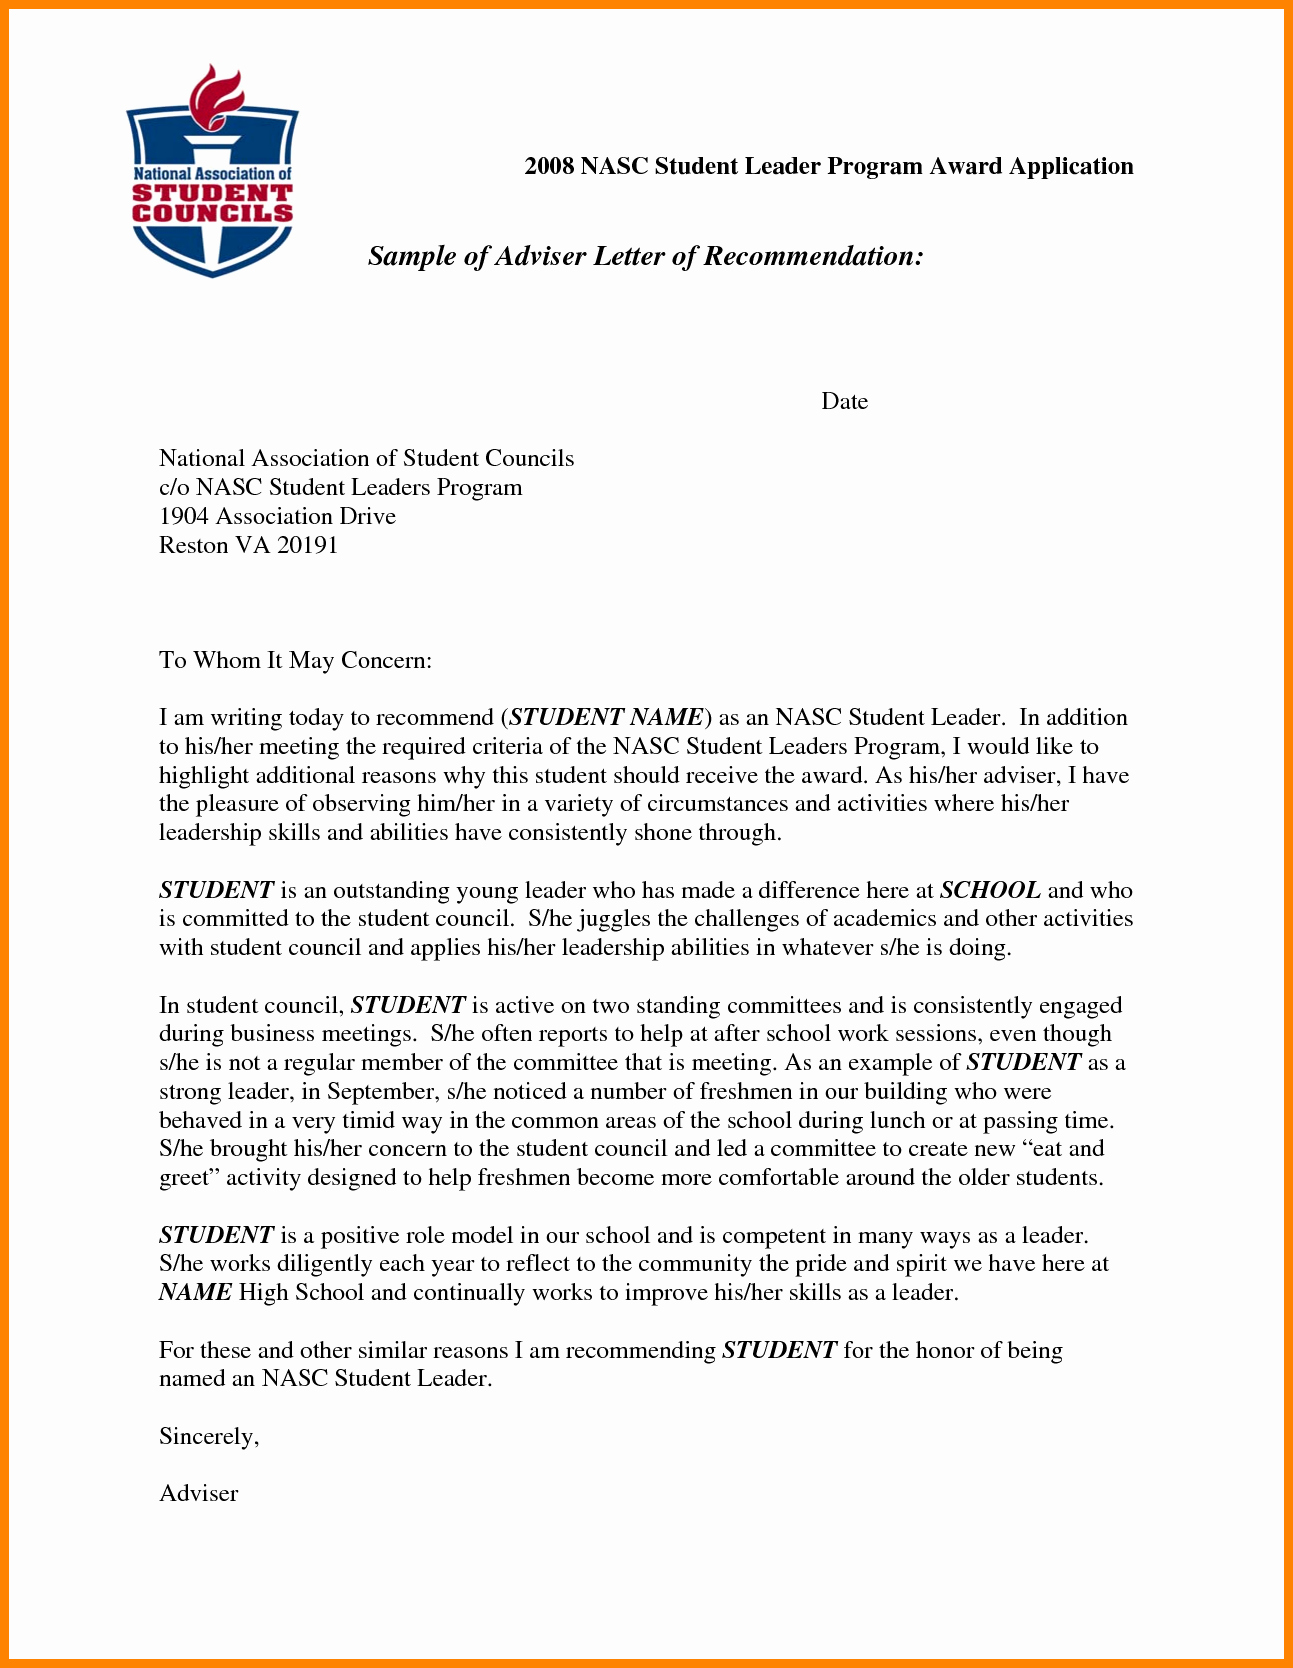 Fulbright Letter Of Recommendation Inspirational 5 Re Mendation Letter Sample for Student Scholarship